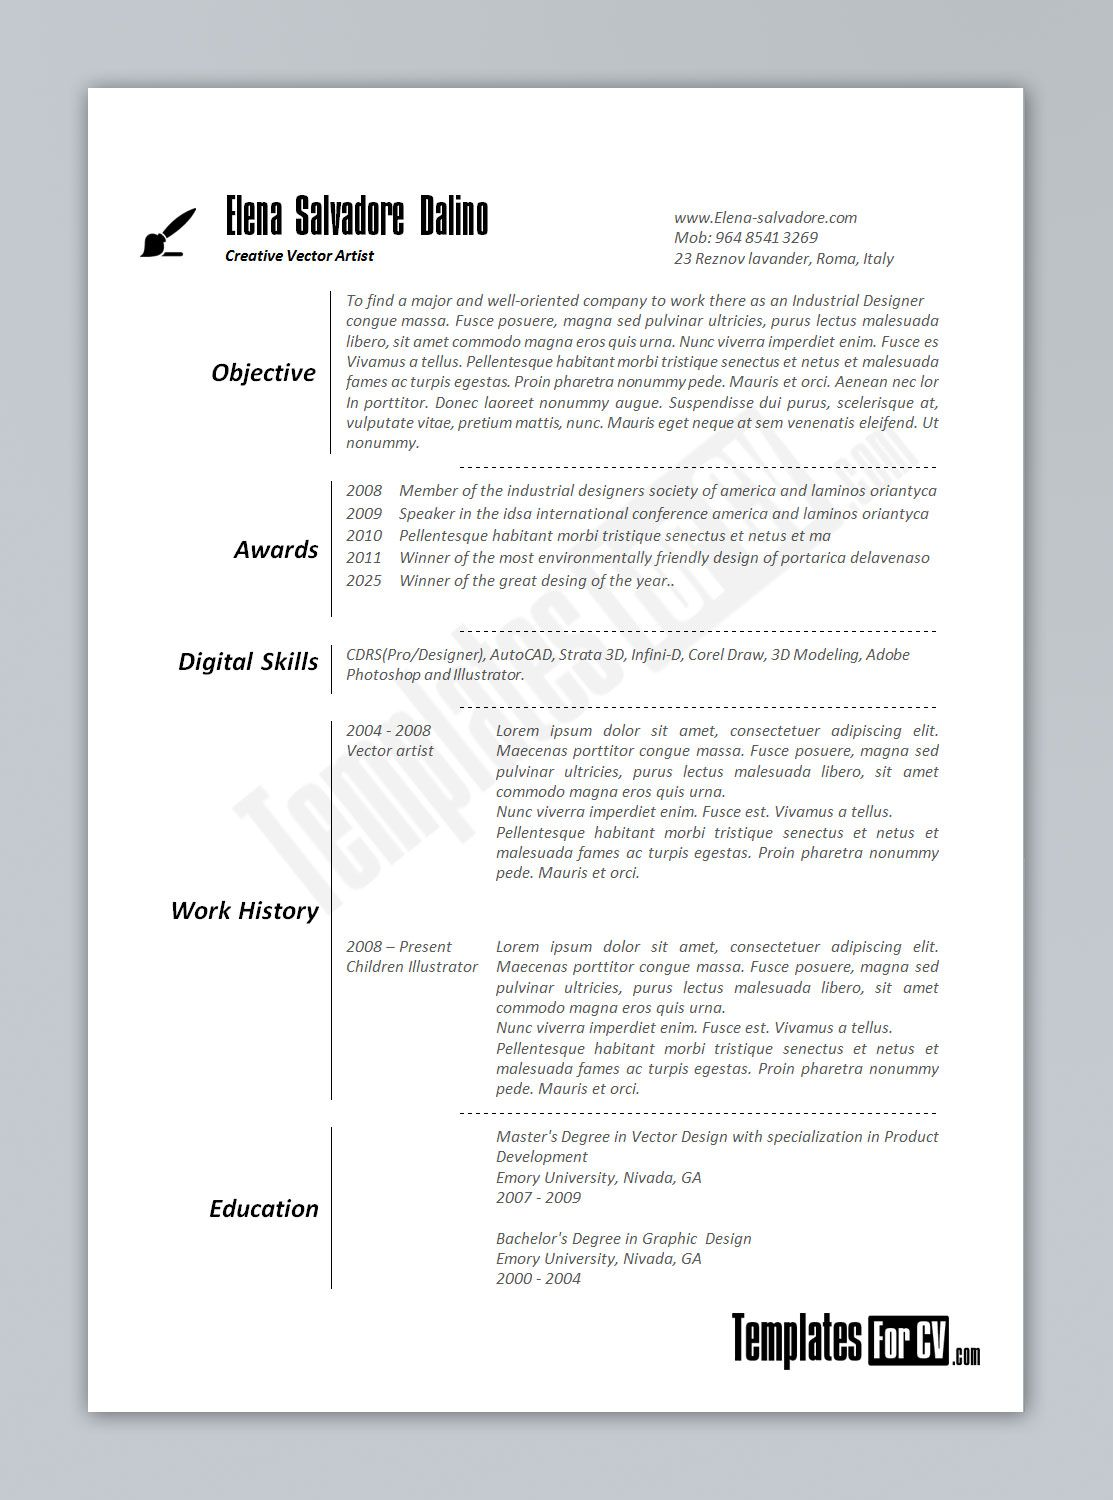 resume template for college students resumecareer artist cv template is a clean and stylish resume you can for open it in your favorite word editor place your detail and win that job